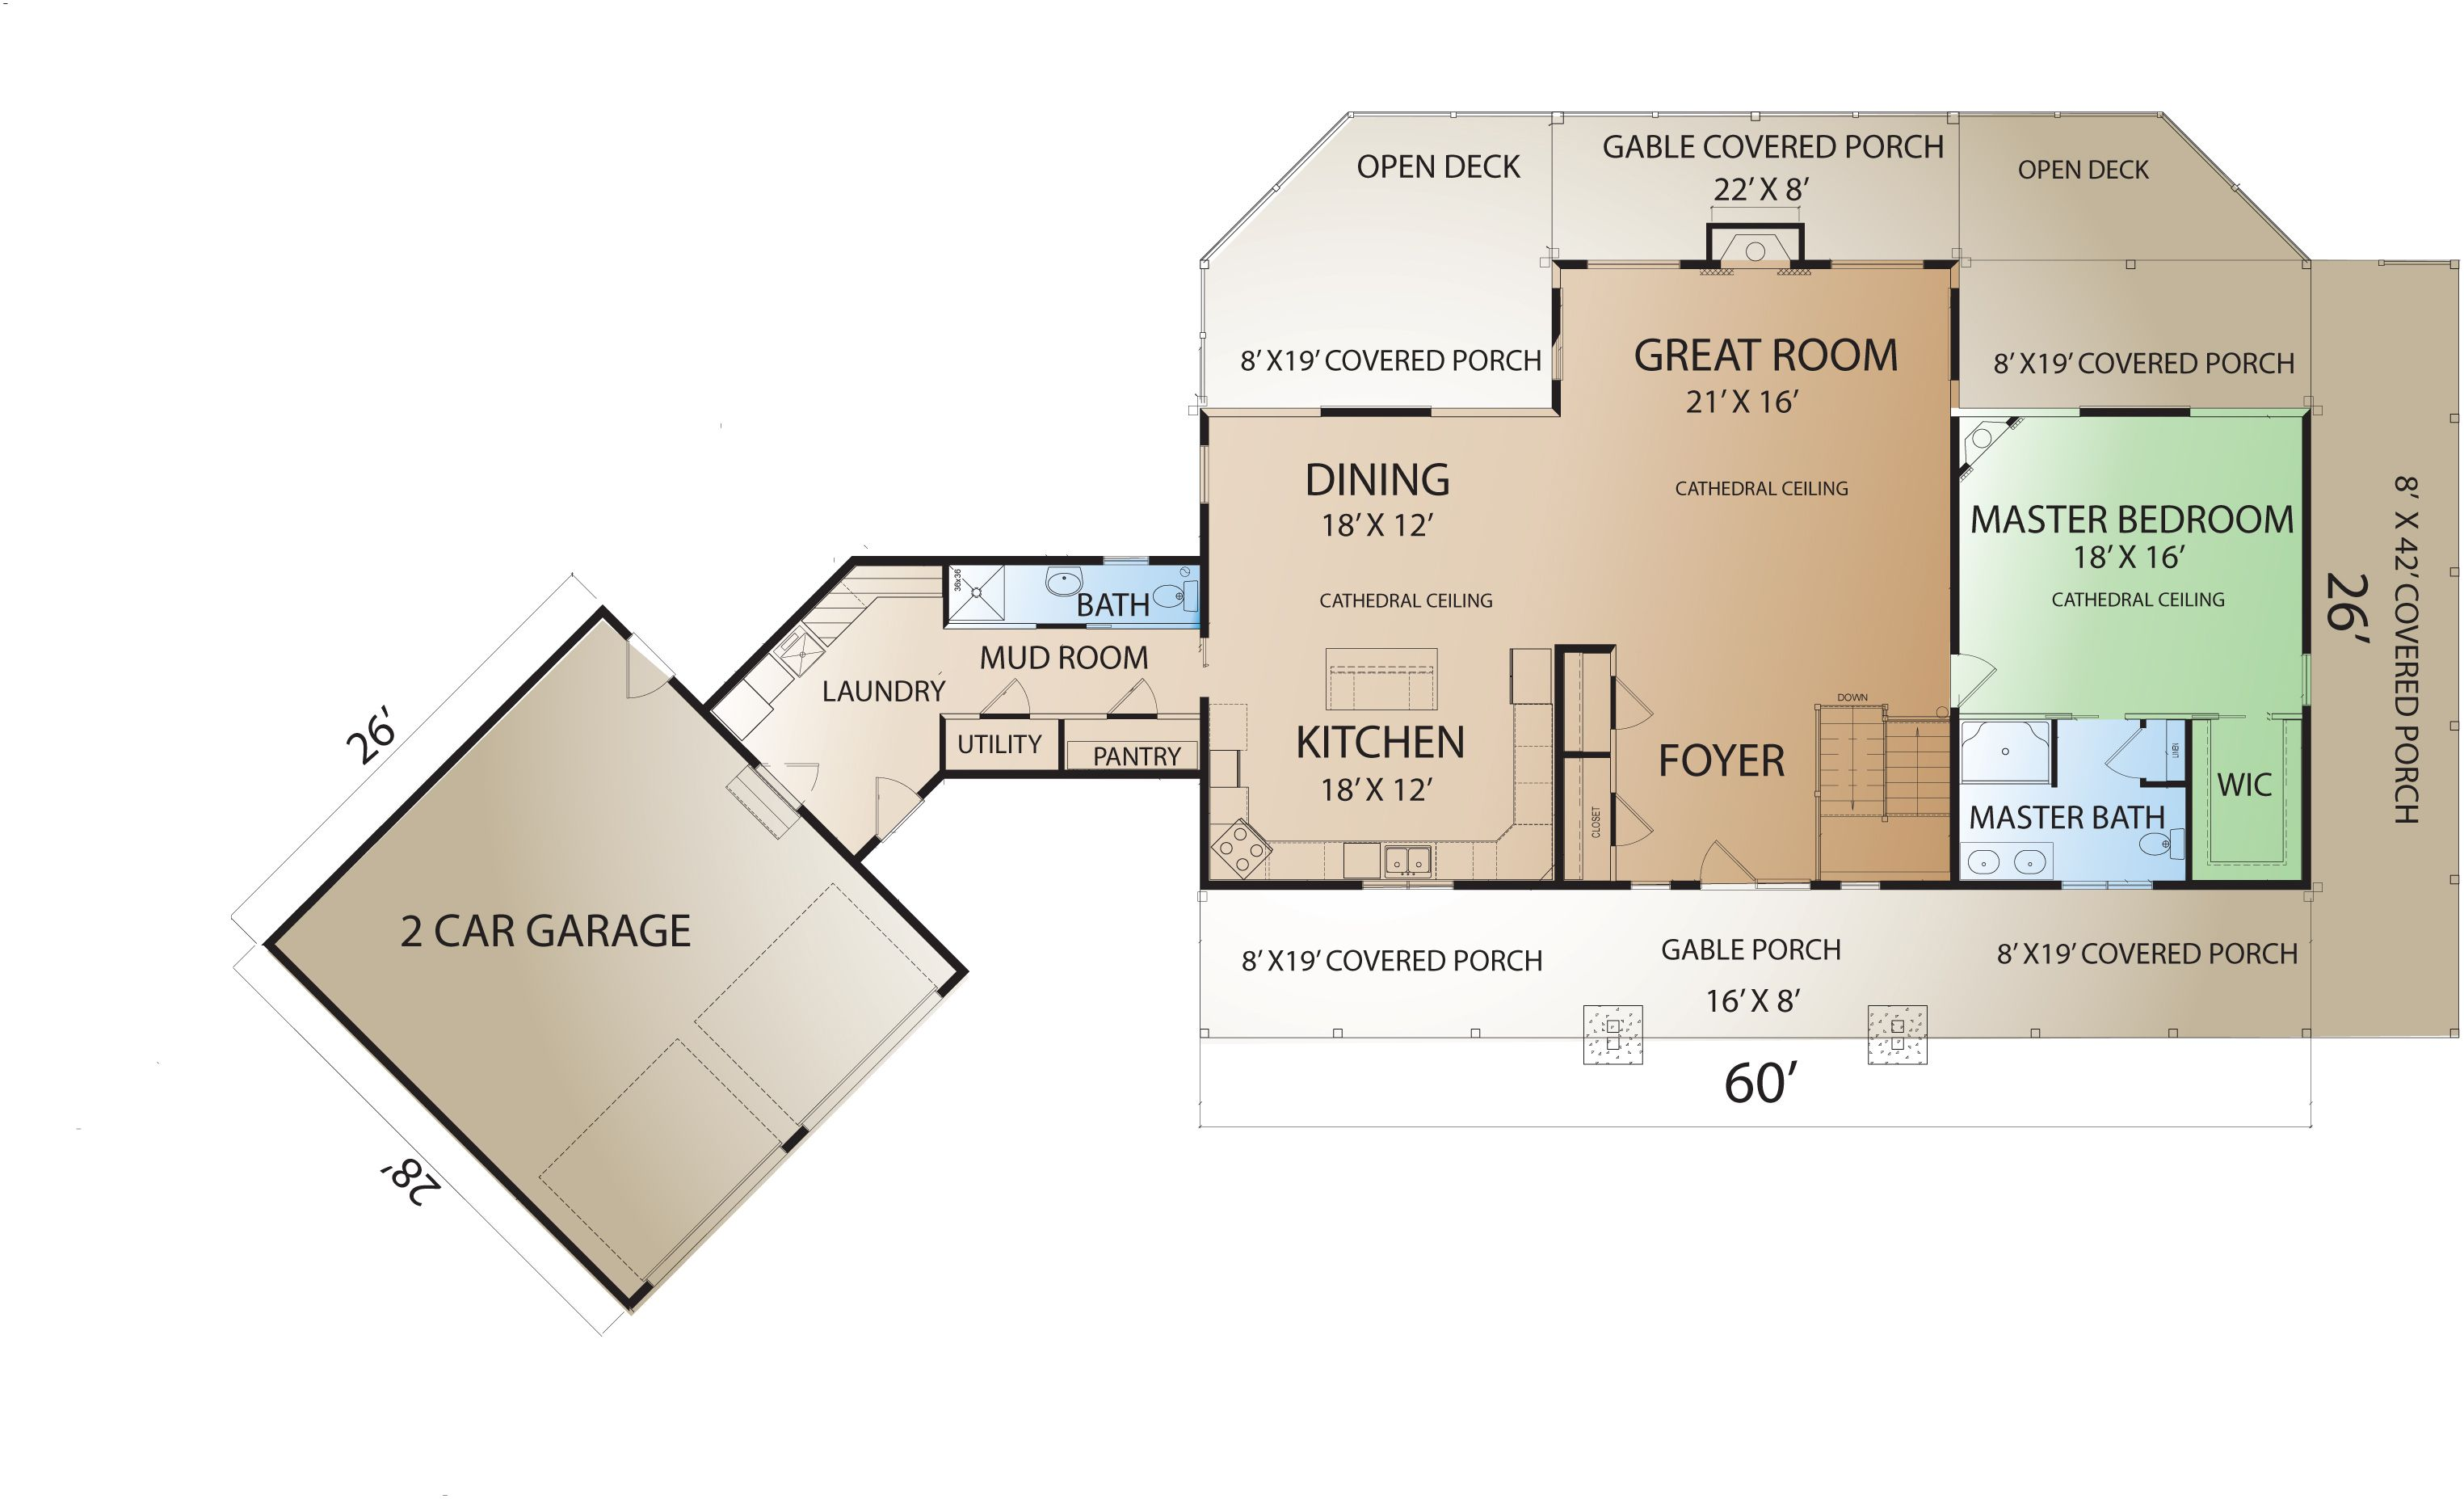 floor plans attached garage | Countrymark_PrairieRanch_FP ... on victorian house plans with detached garage, small house plans with detached garage, ranch home plans with 2 car garage, large home plans with detached garage, farmhouse plans with detached garage, craftsman house plans with detached garage,